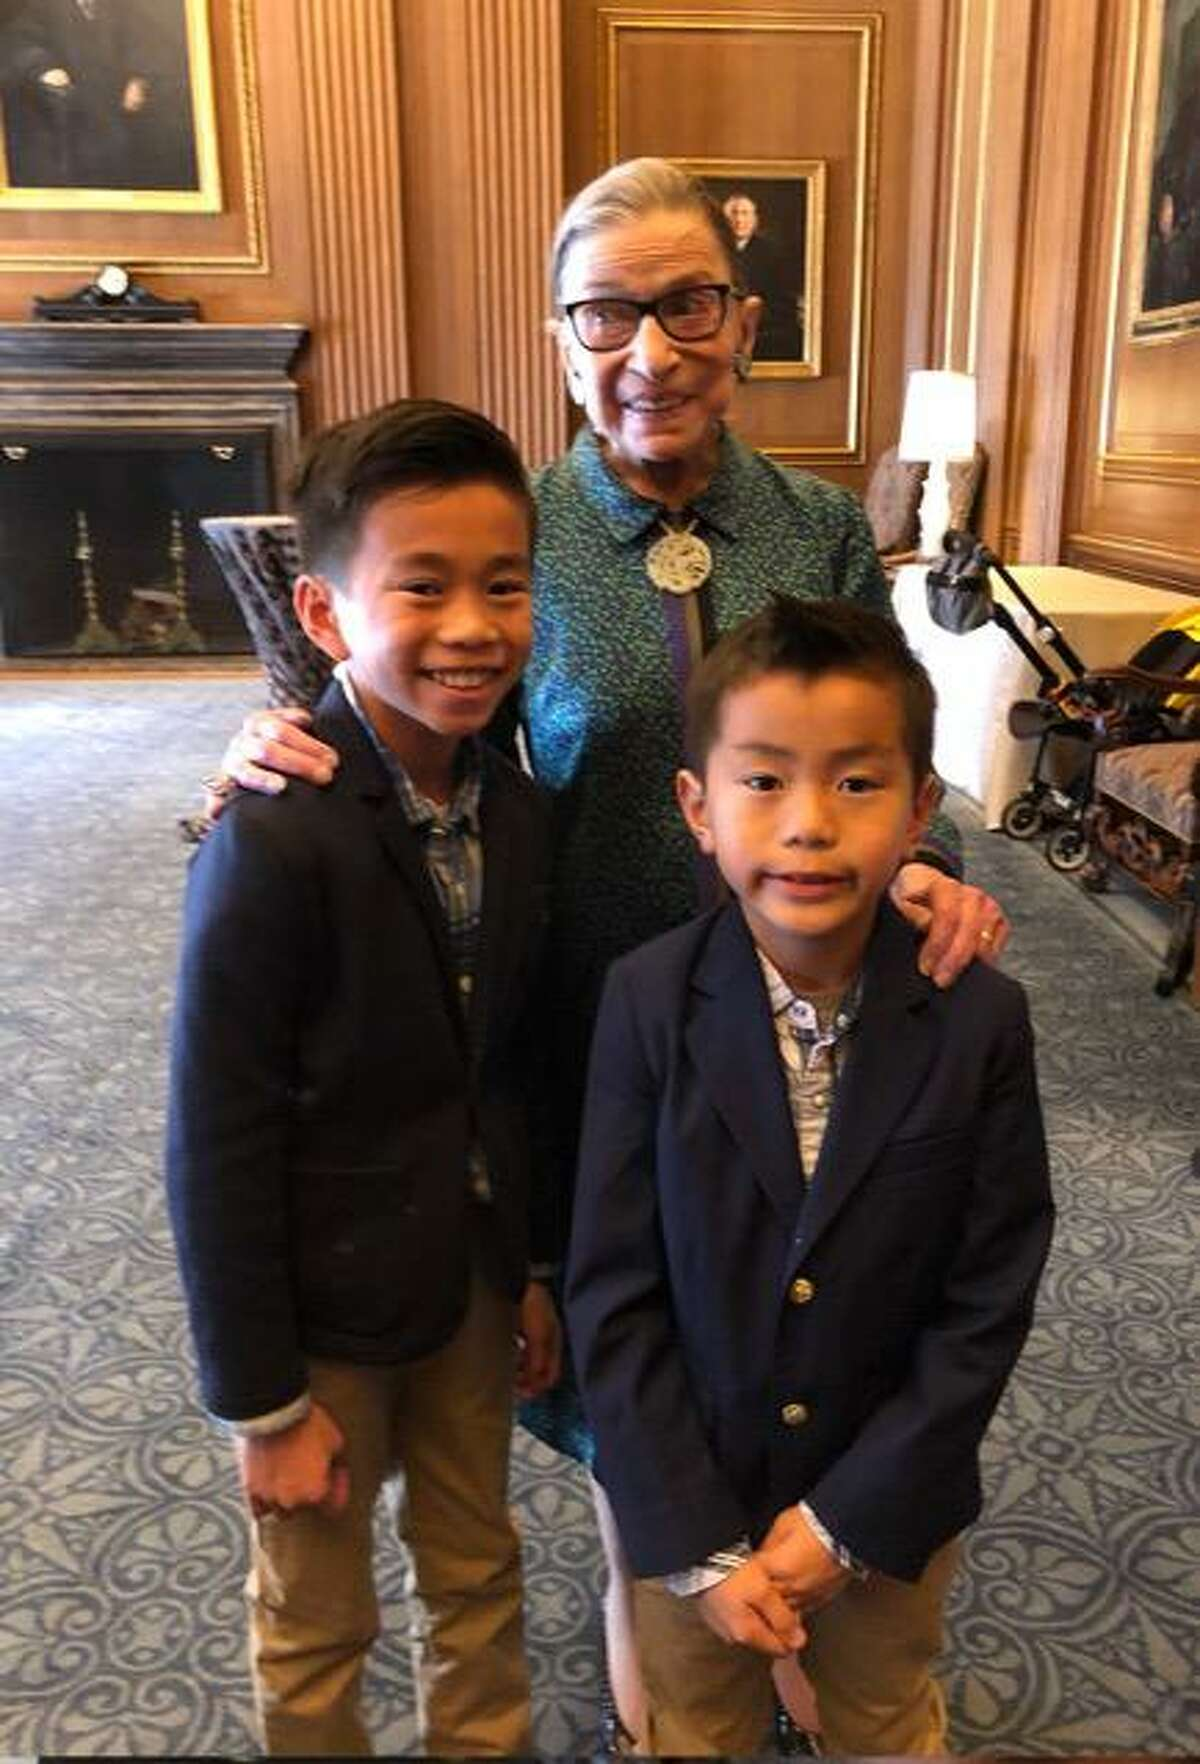 Justice Ginsburg with Michael Li-Ming Wong's children, Caleb Wong and Jacob Wong, in 2018 at the Supreme Court.